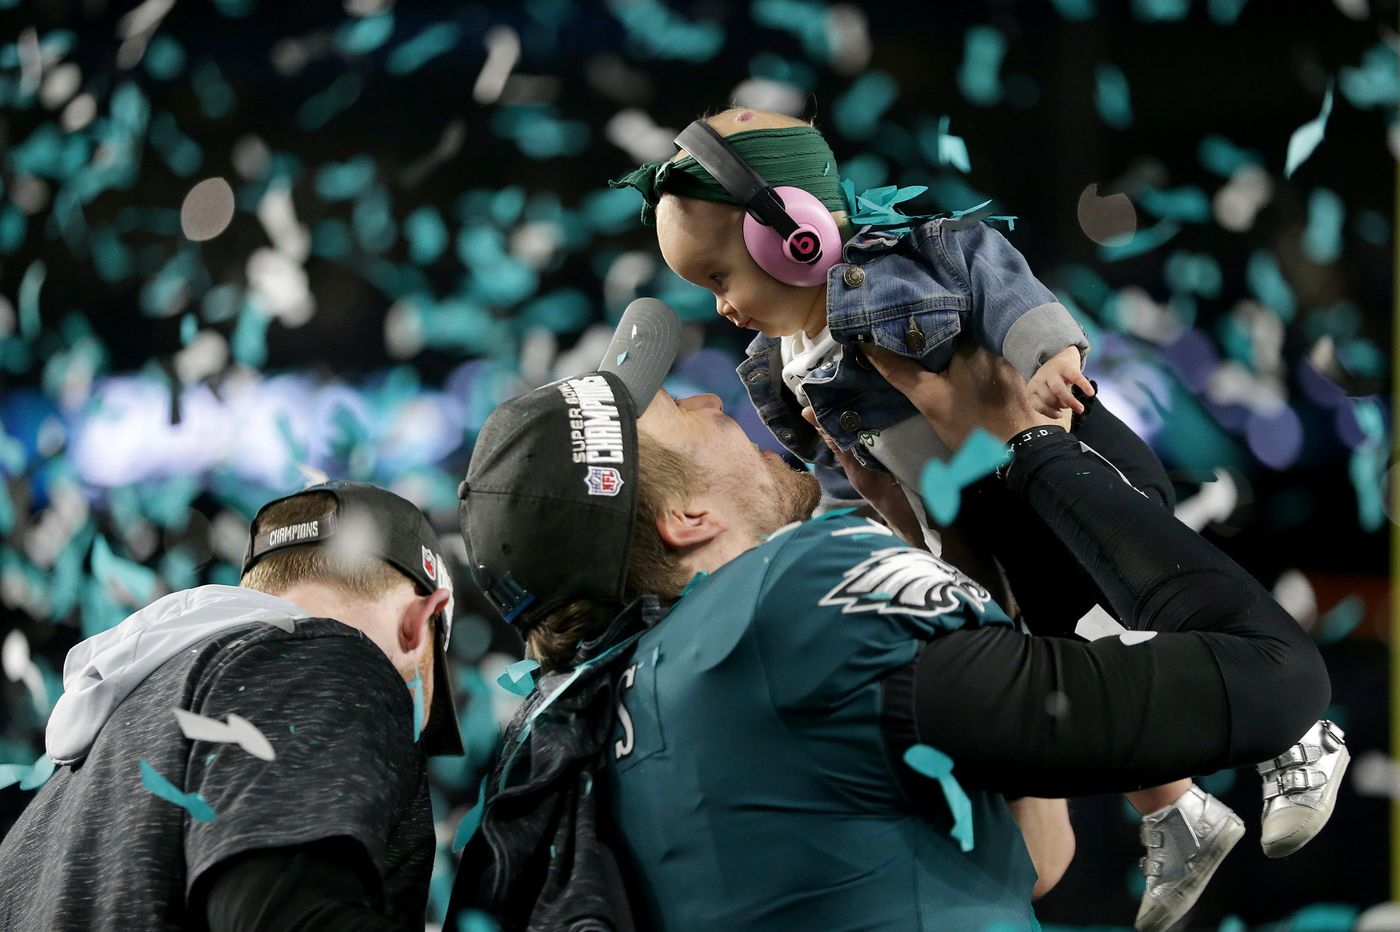 Nick Foles chose between the Eagles and Buccaneers in March 2017. His daughter helped bring him to Philly.